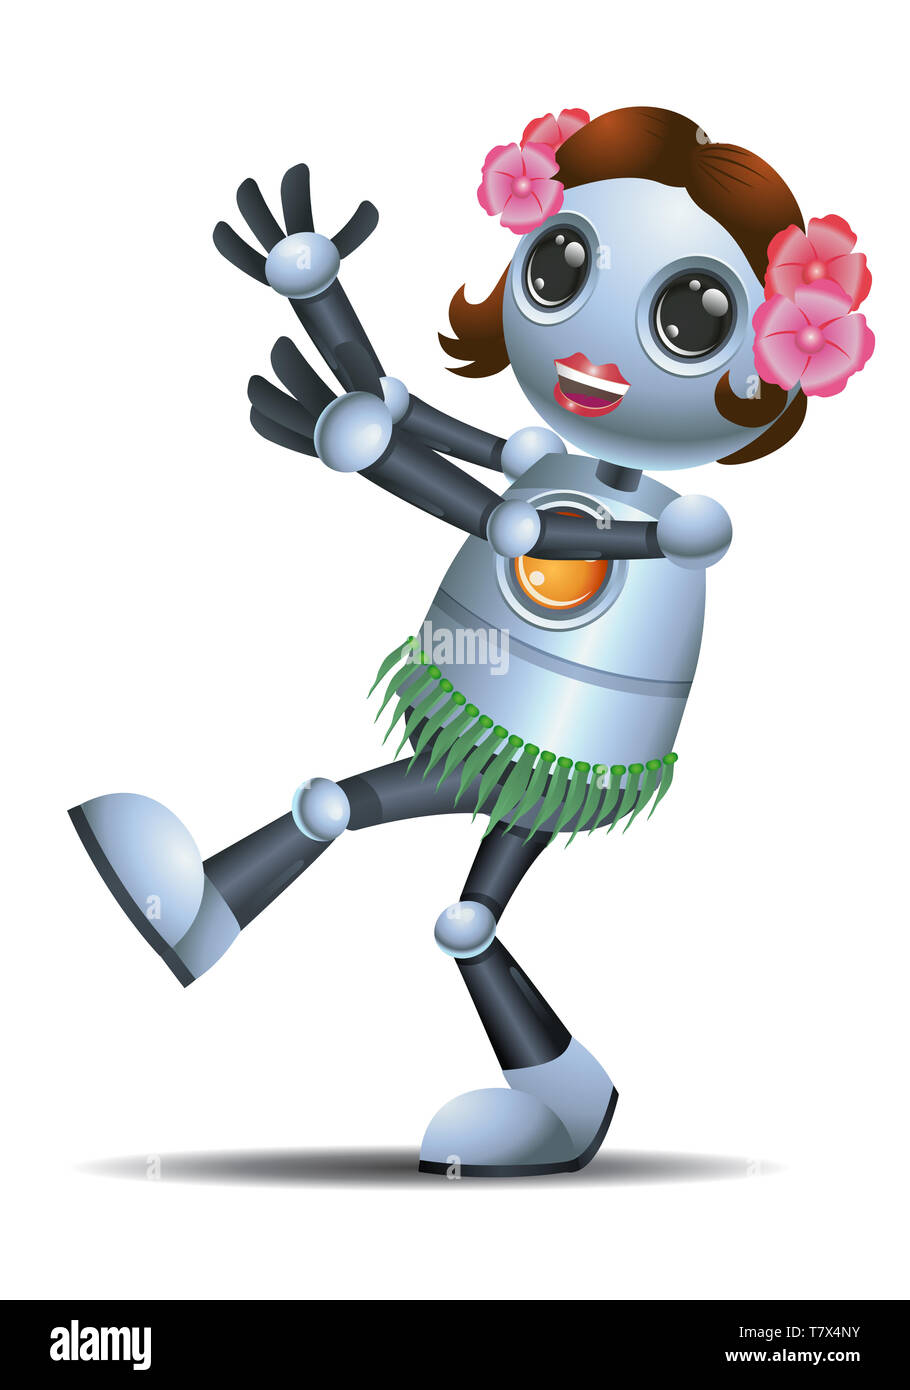 illustration of a little robot dance wearing hula skirt on isolated white background - Stock Image